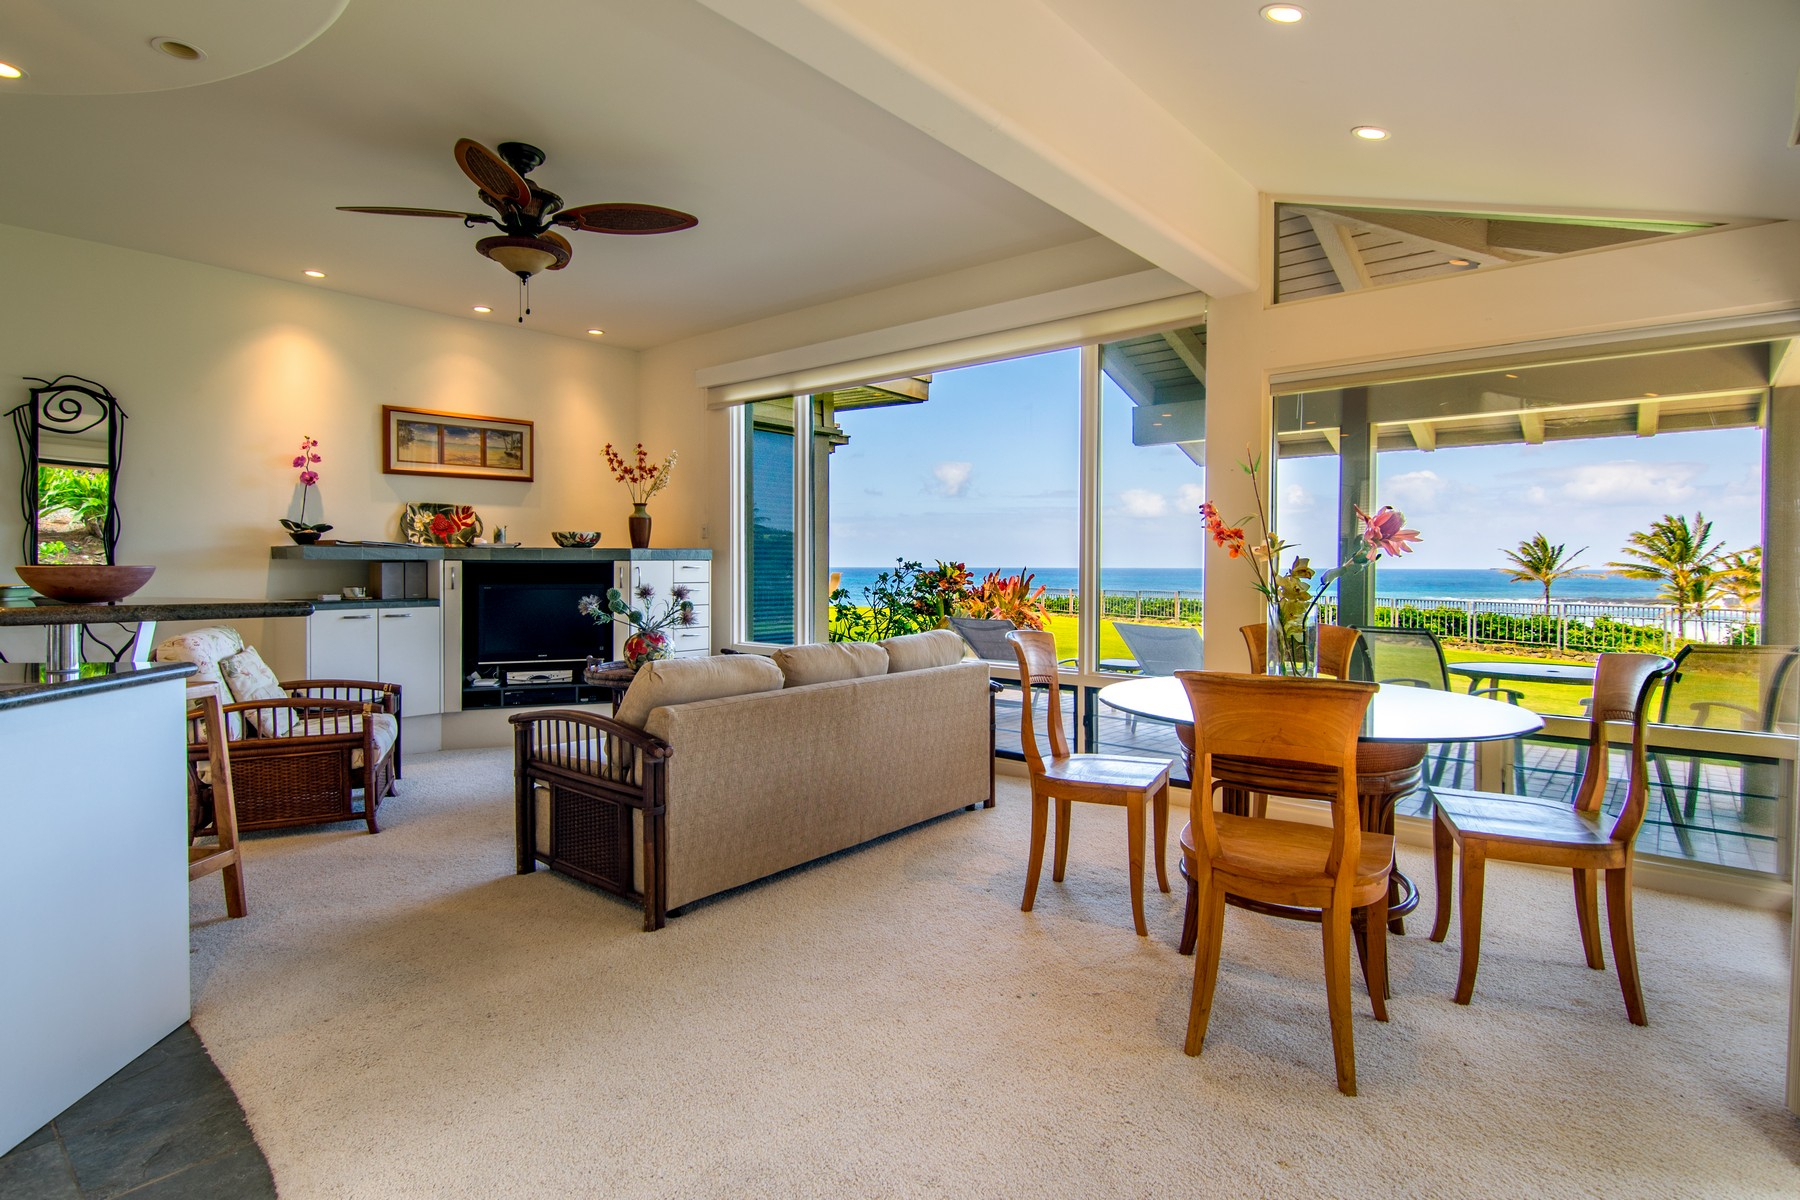 Condominium for Sale at Kapalua Bay Villa 500 Bay Drive, Kapalua Bay Villa 19G5 Kapalua, Hawaii, 96761 United States